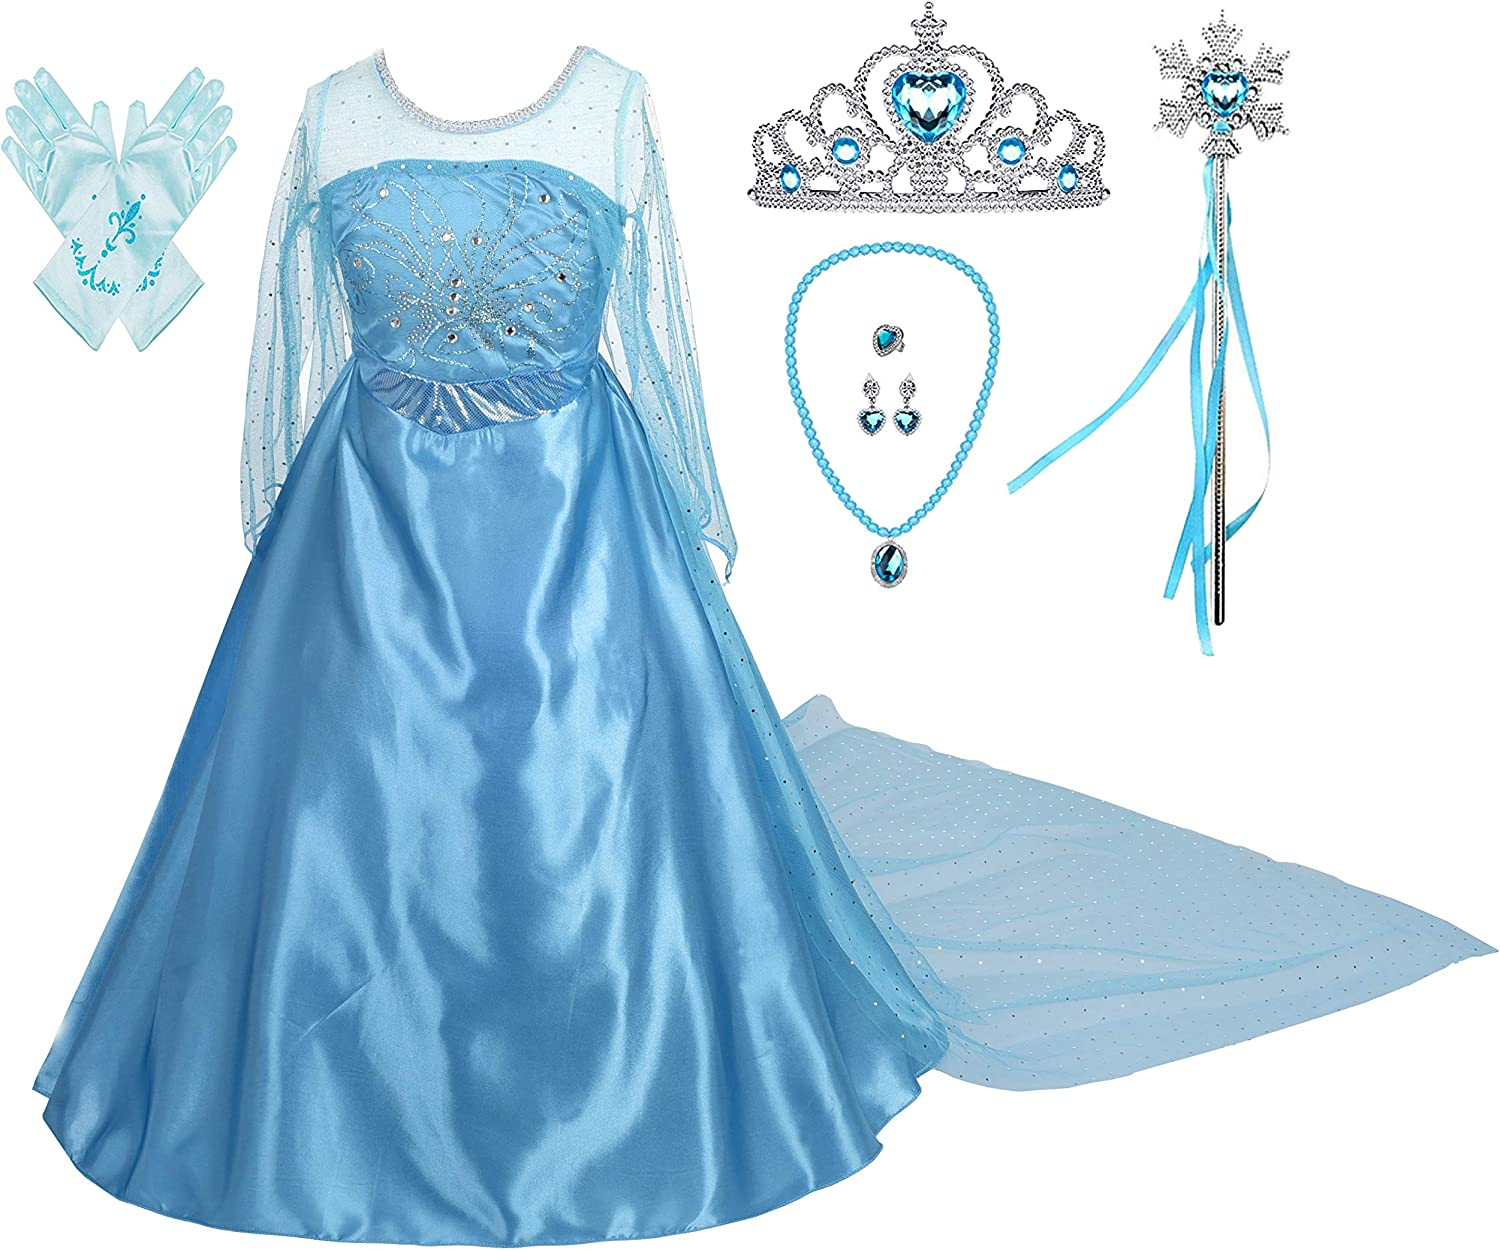 Lito Angels Girls Princess Dress Up Costumes Snow Queen Dress Halloween Christmas Costume with Accessories